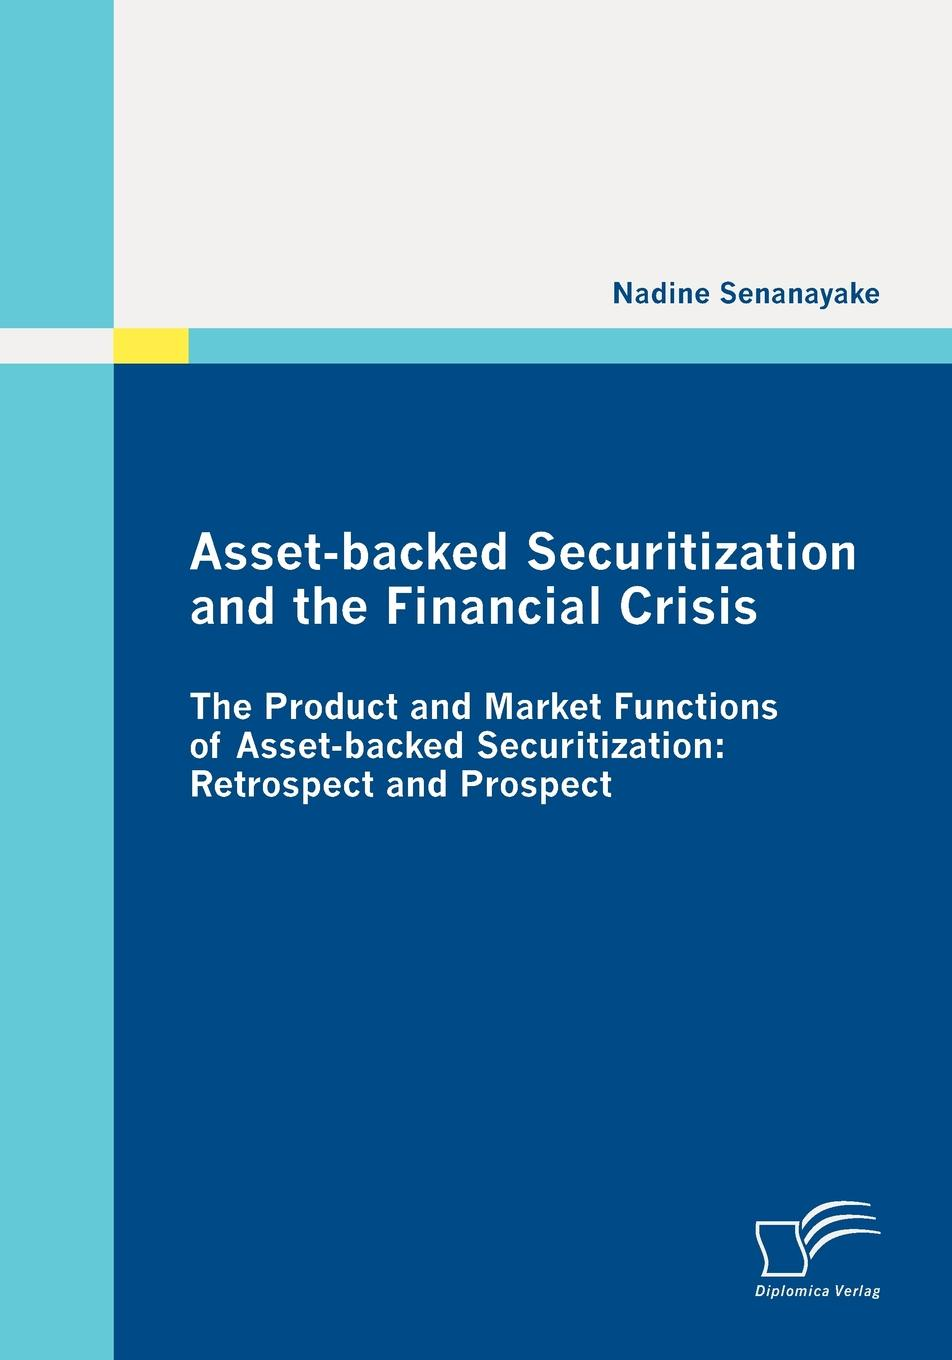 Nadine Senanayake Asset-backed Securitization and the Financial Crisis frank fabozzi j investing in mortgage backed and asset backed securities financial modeling with r and open source analytics